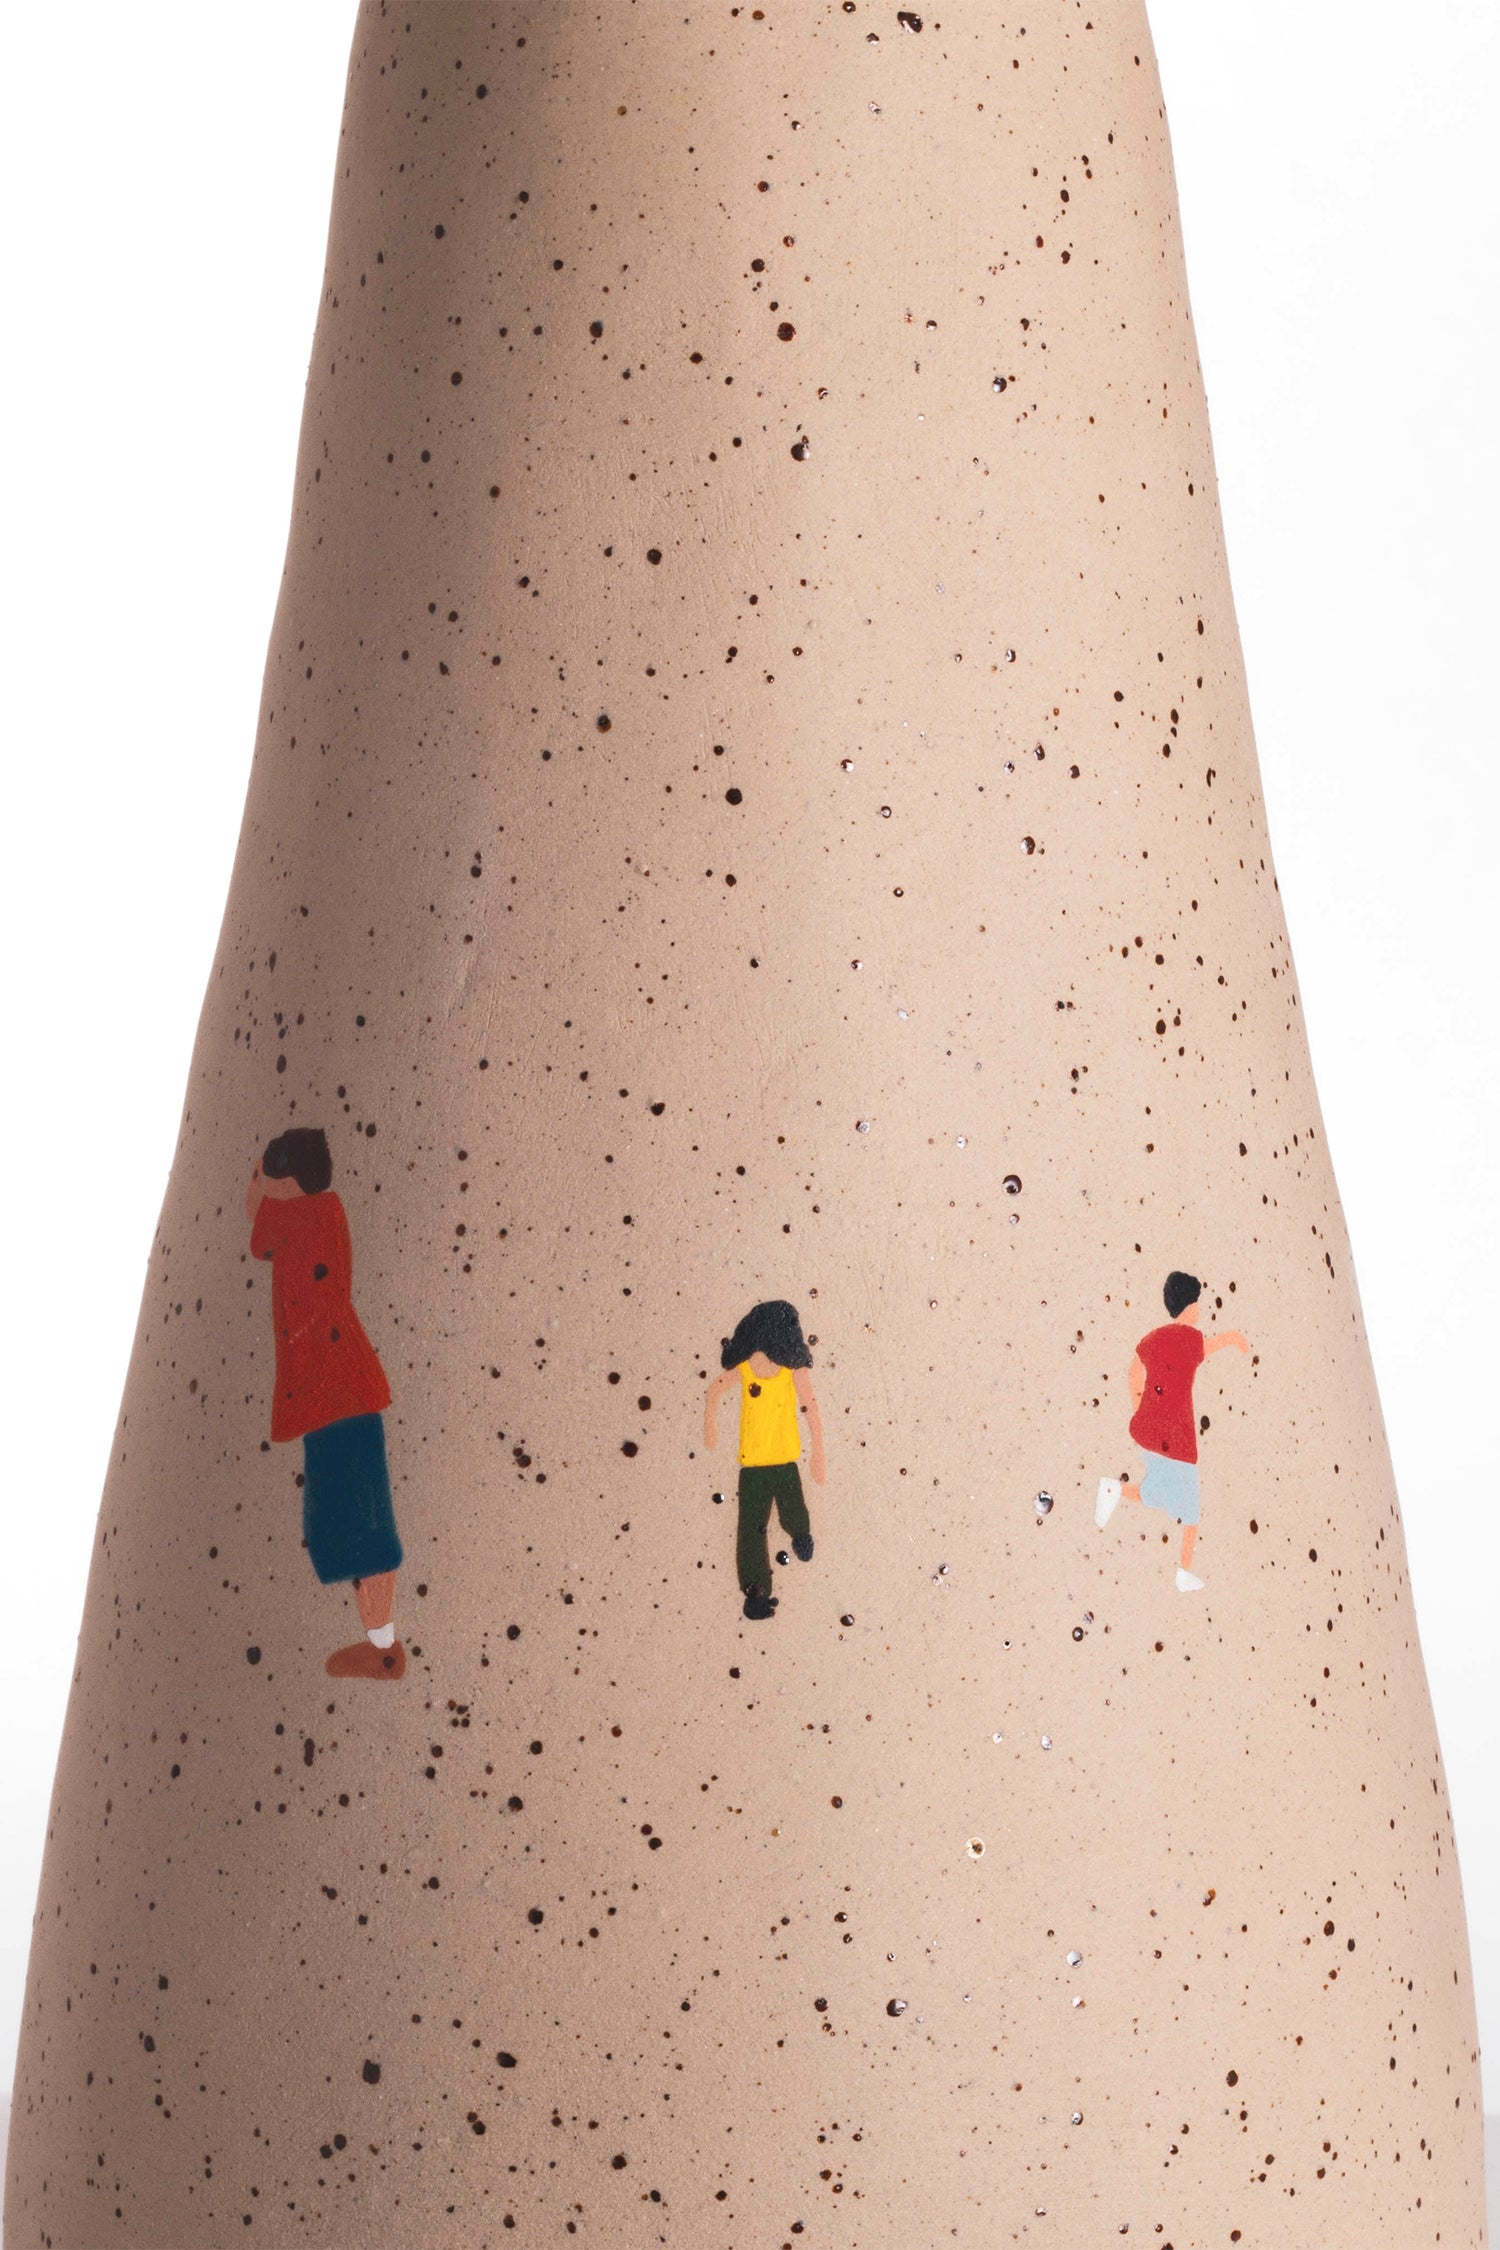 Vase - Natural Clay - Hide and Seek